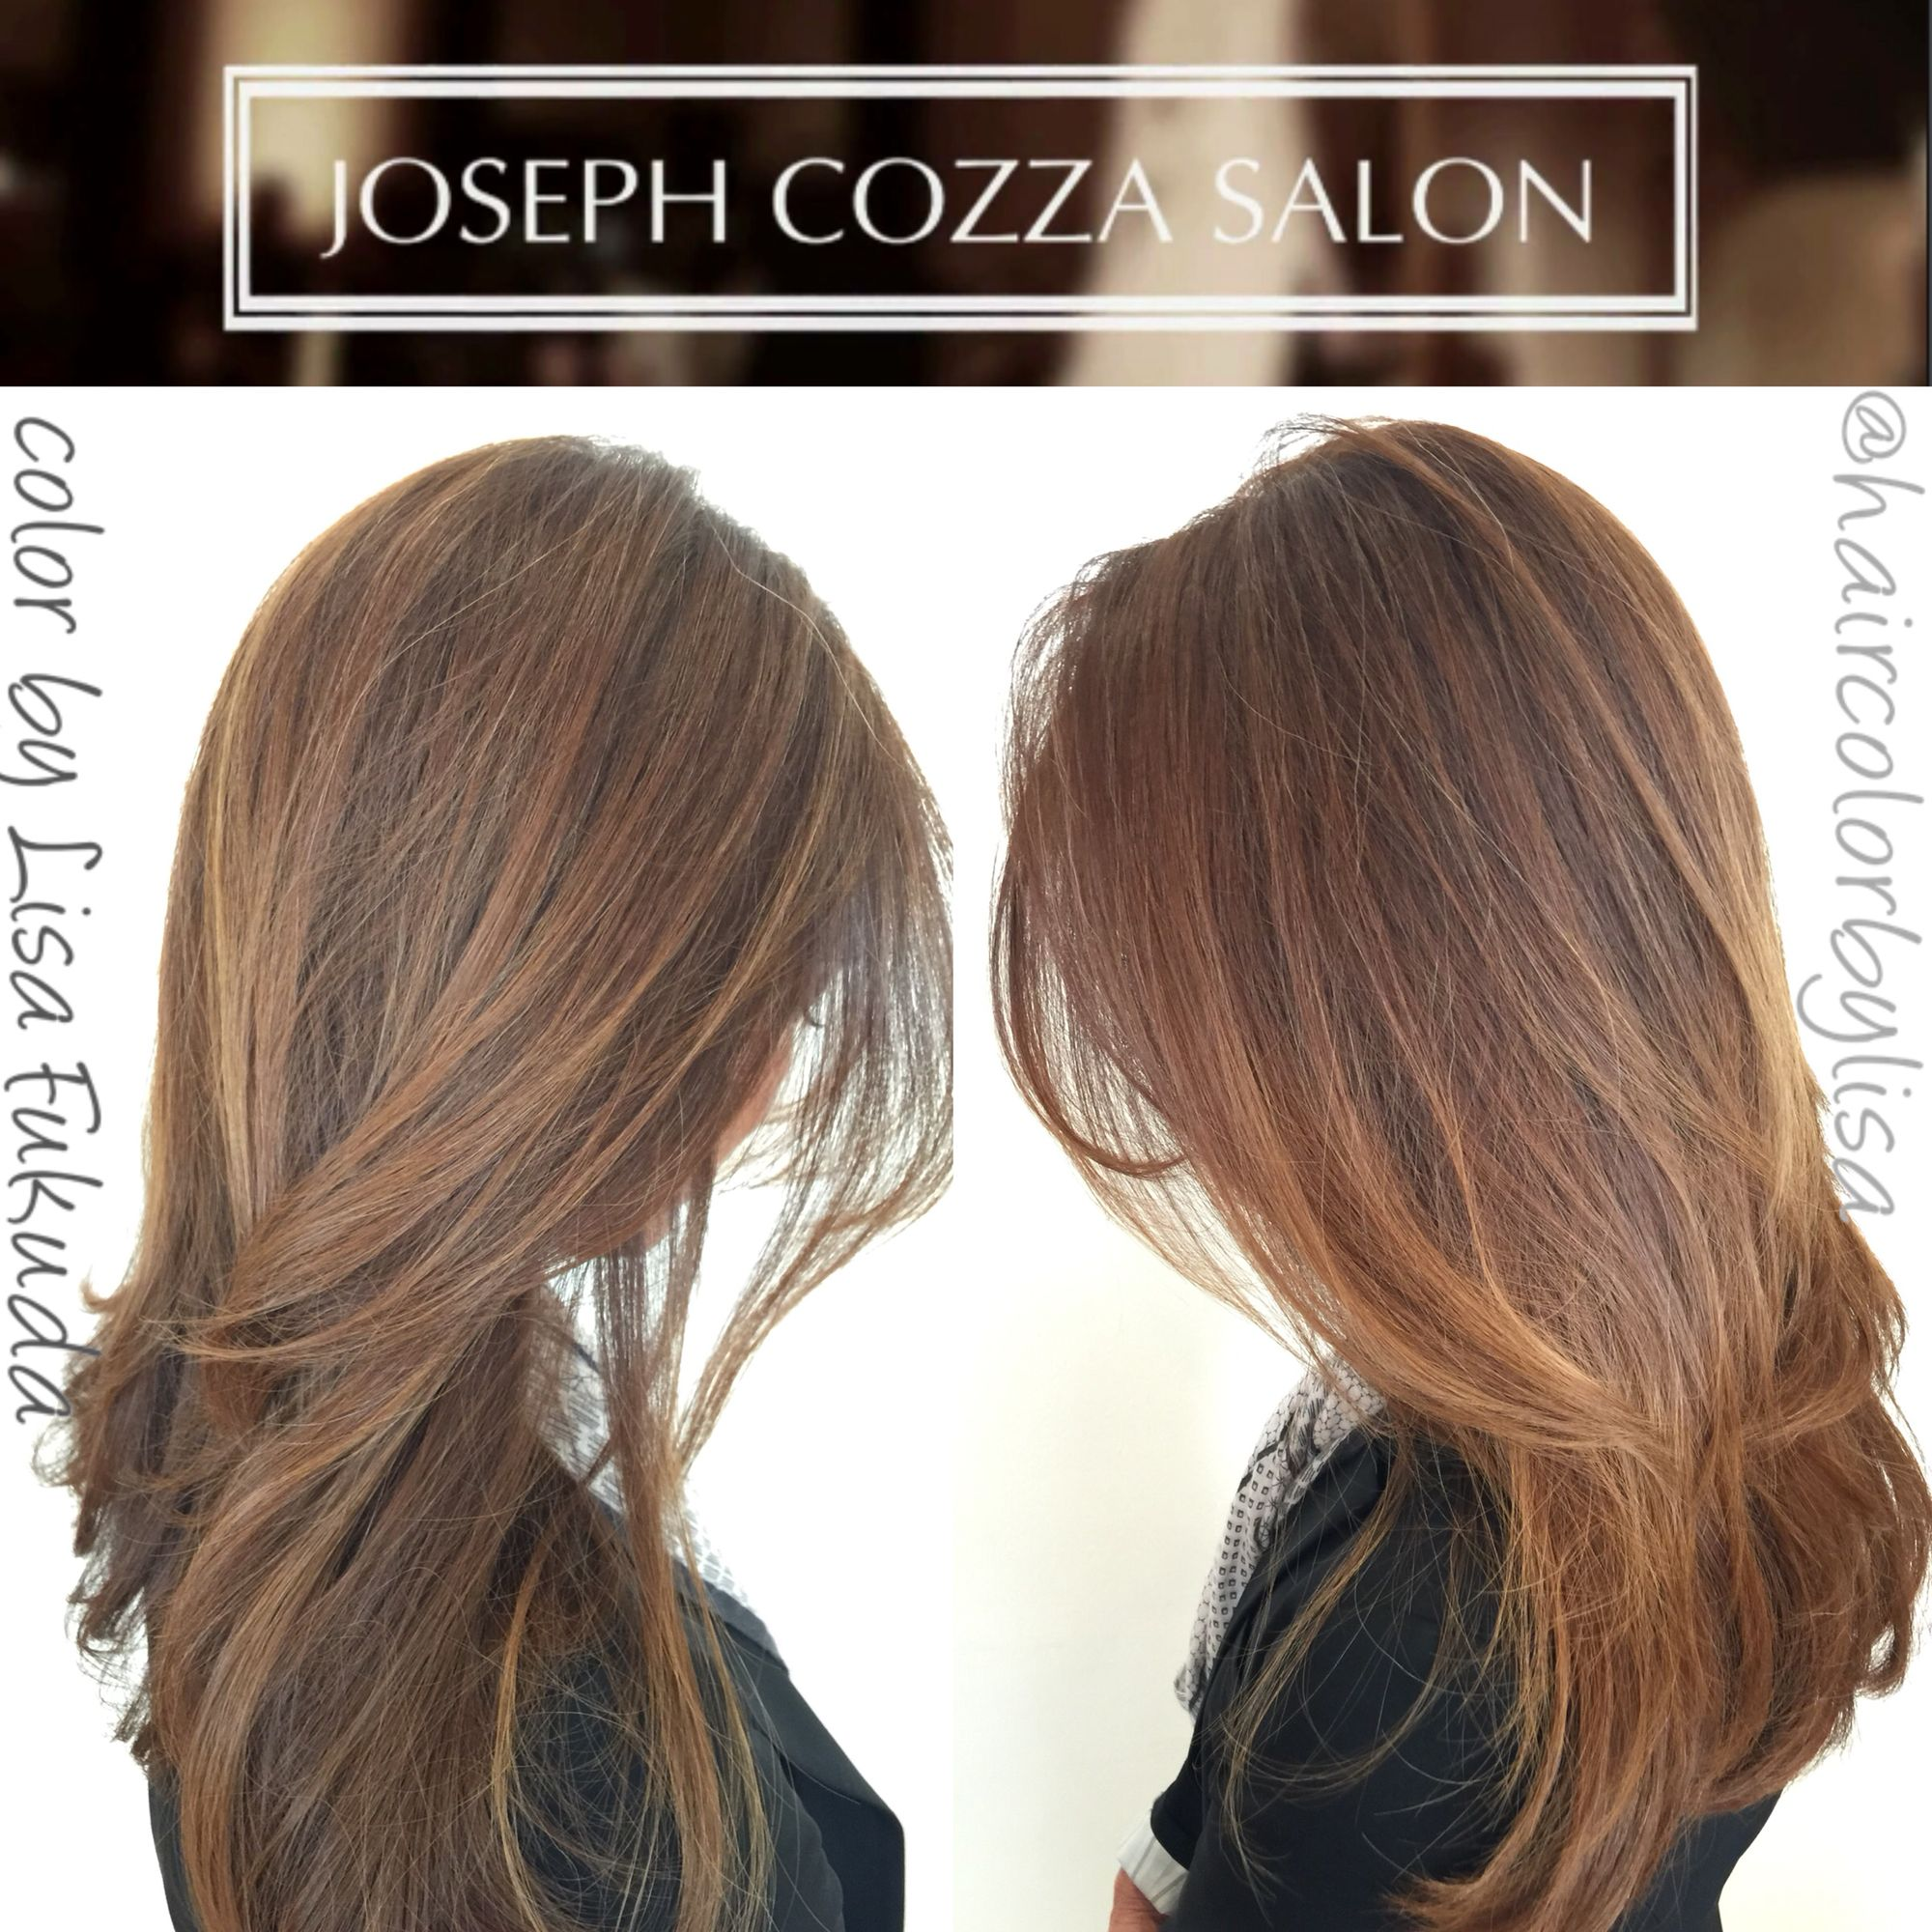 Blonde Soft Ombré on Brunette Balayage Highlights by Lisa Fukuda &CocoAlexander Styled by CocoAlexander  JosephCozzaSalon 77 Maiden Lane Sf Ca 1415 4333030 followme @haircolorbylisa